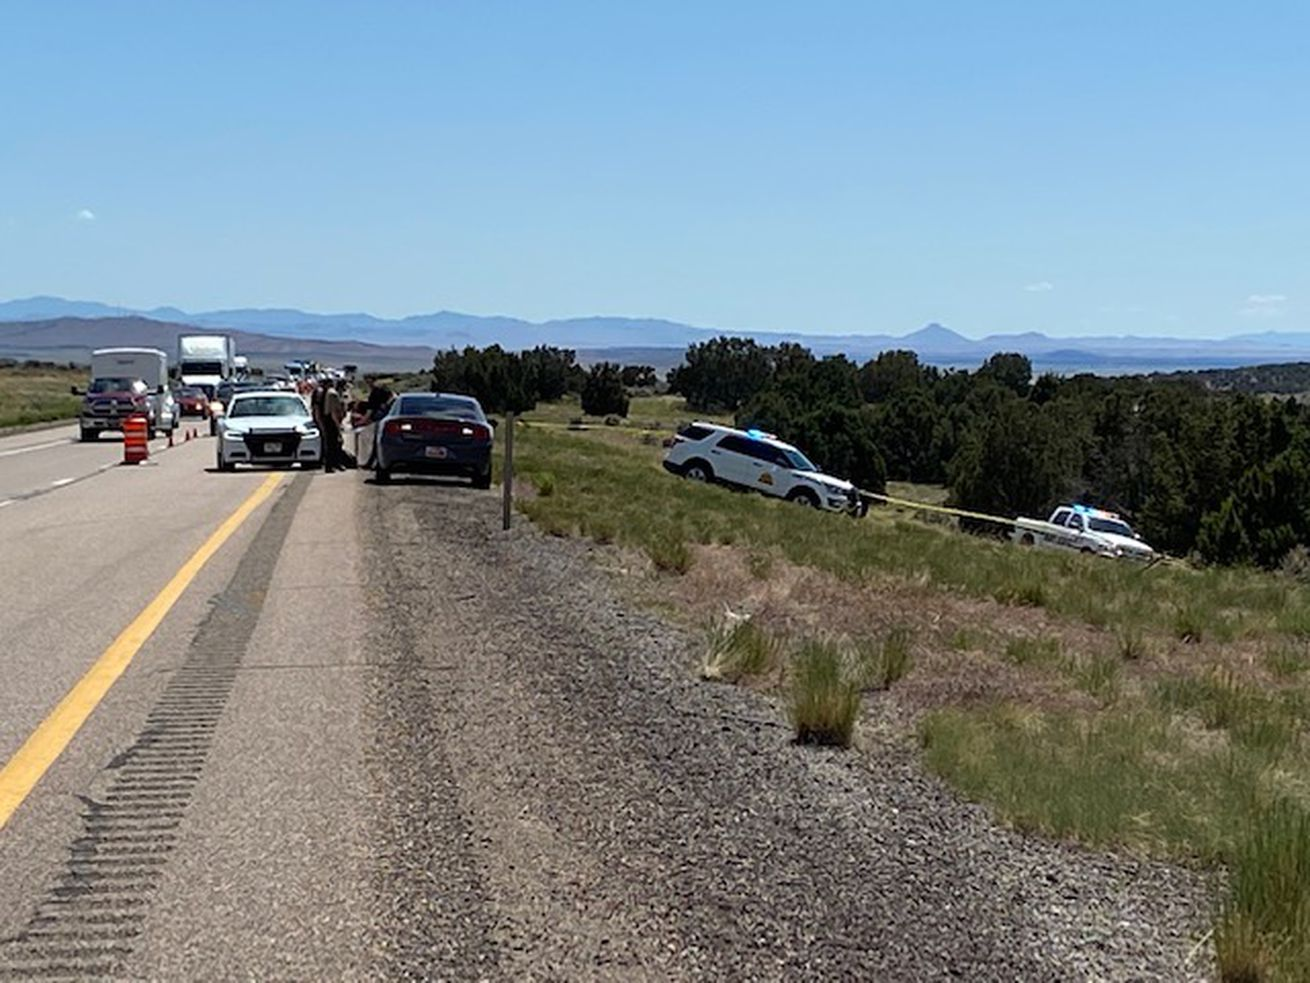 Police respond to a scene near Scipio in Millard County after a man was injured in an encounter with a Millard County Sheriff's deputy on Thursday, May 21, 2020. Police would not confirm Thursday whether the victim's injury was caused by a gunshot or if the deputy fired his weapon.